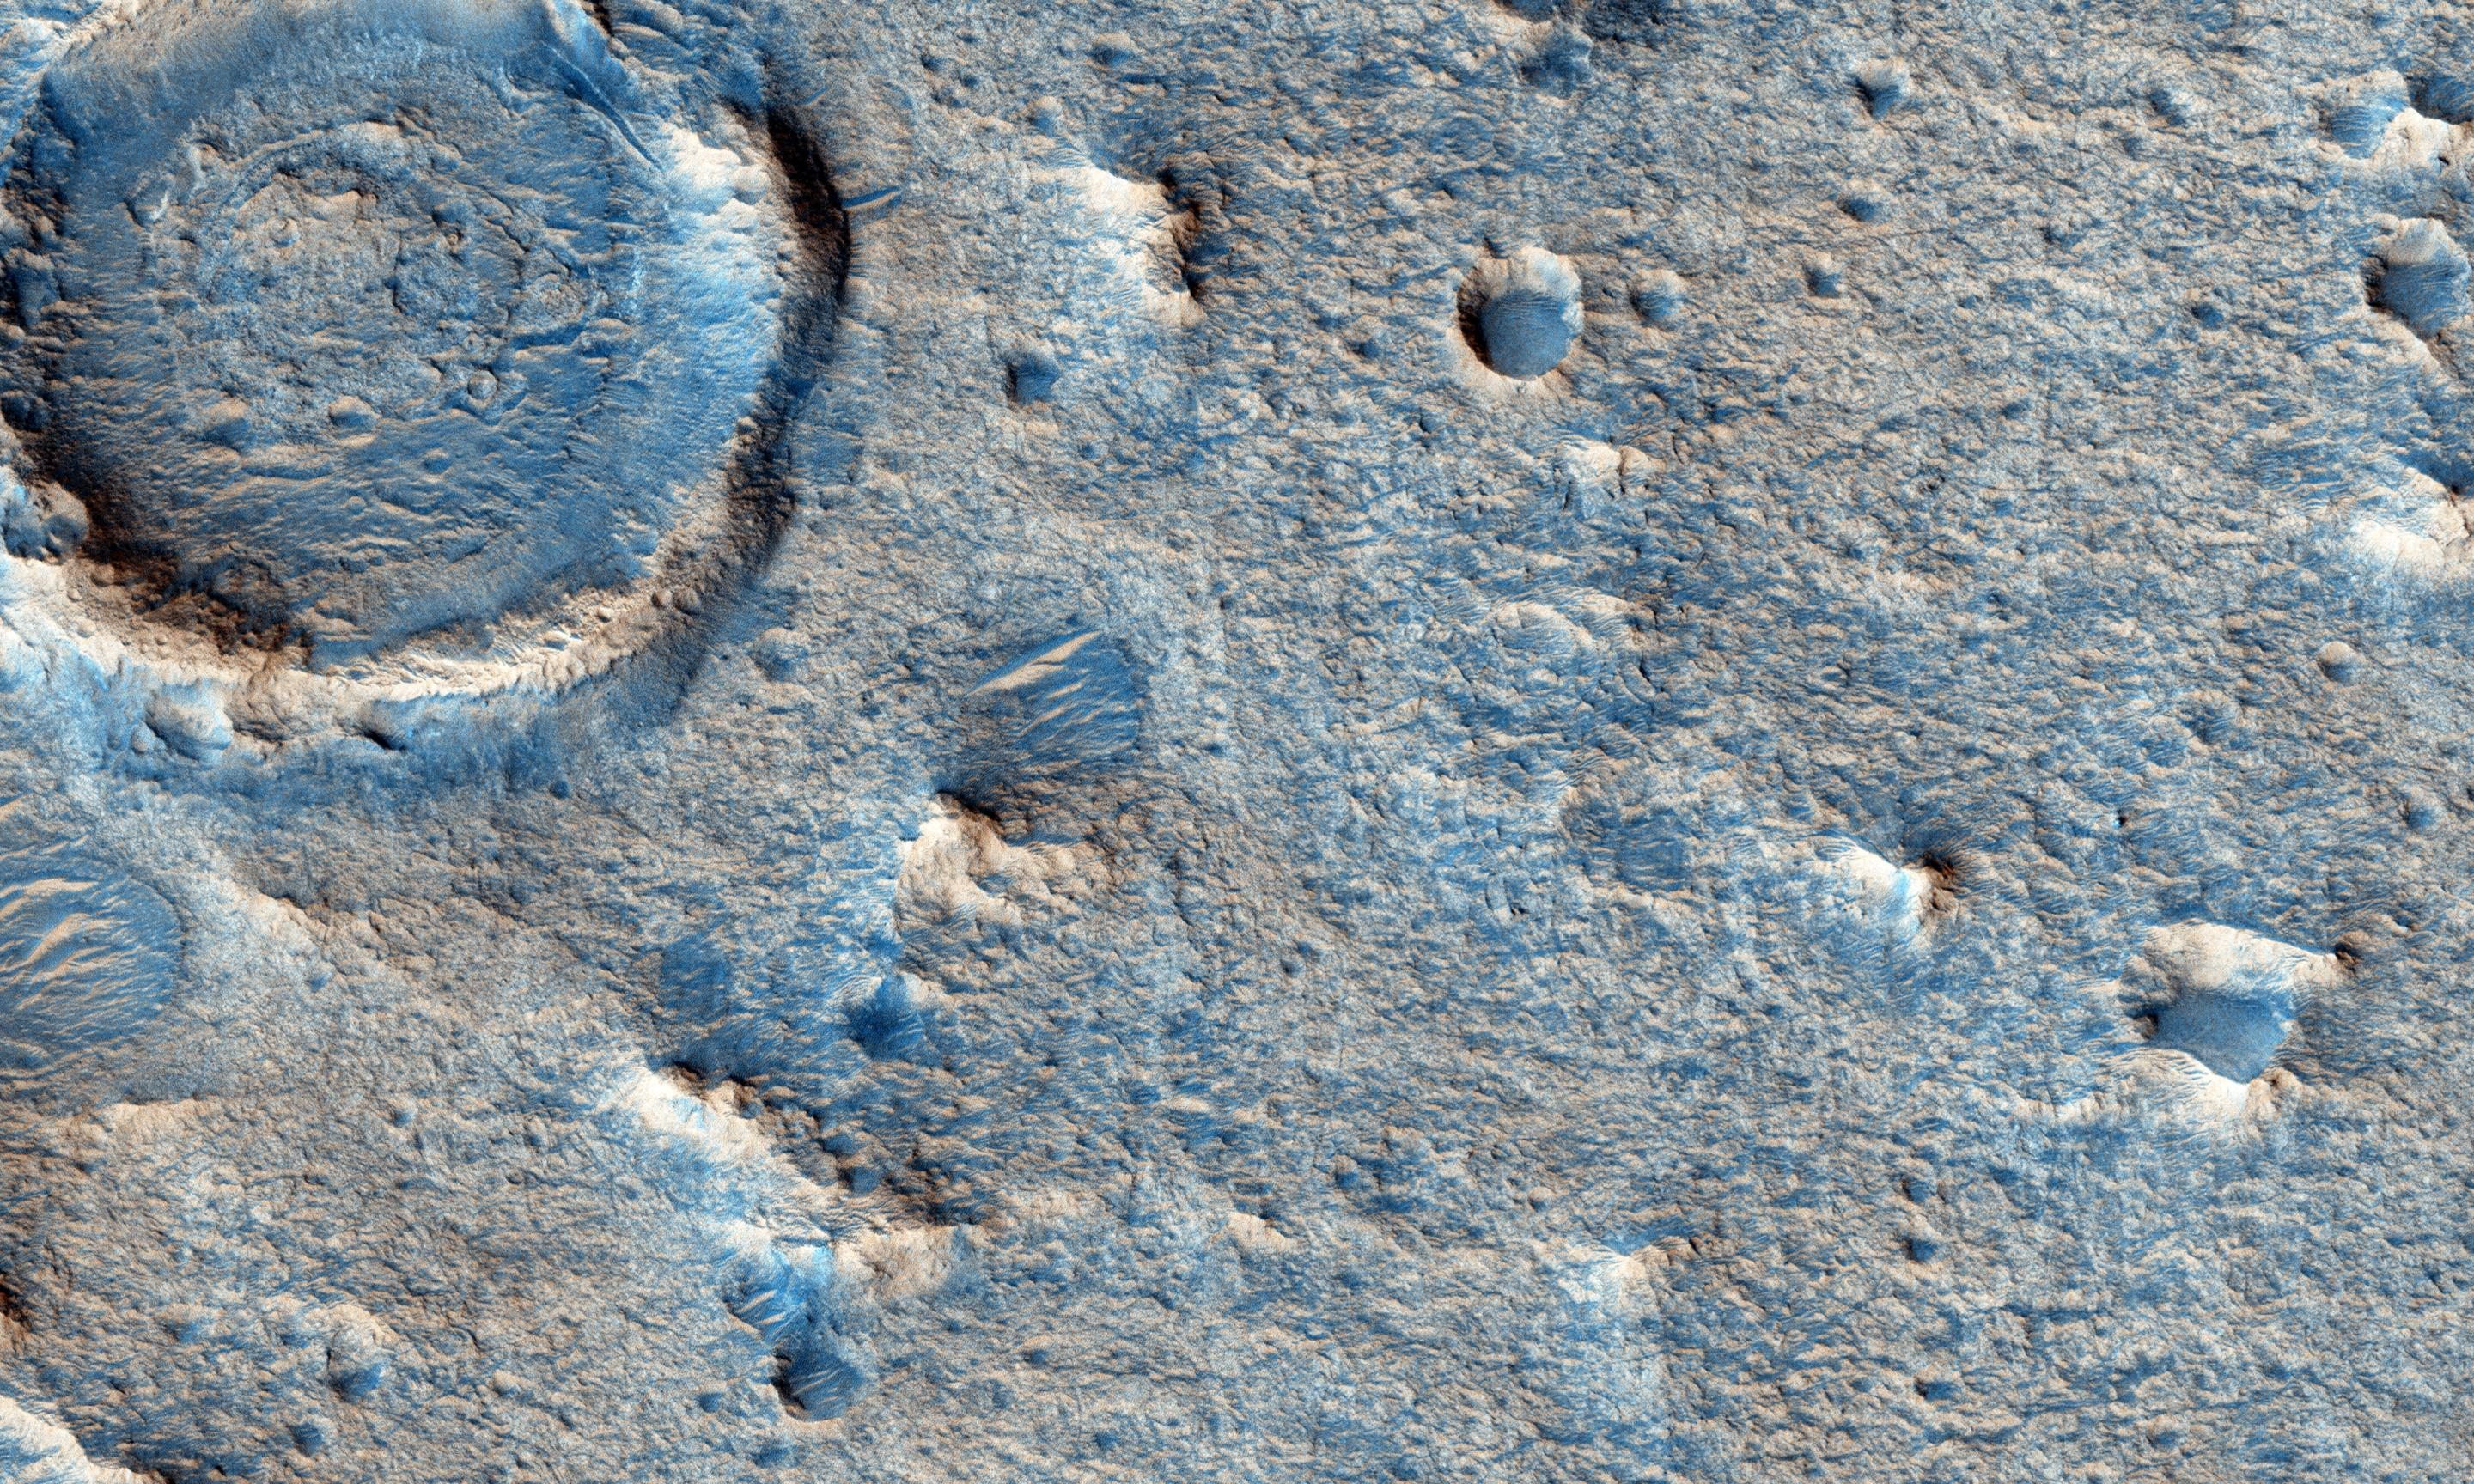 Spacewatch: landing site for ExoMars mission chosen